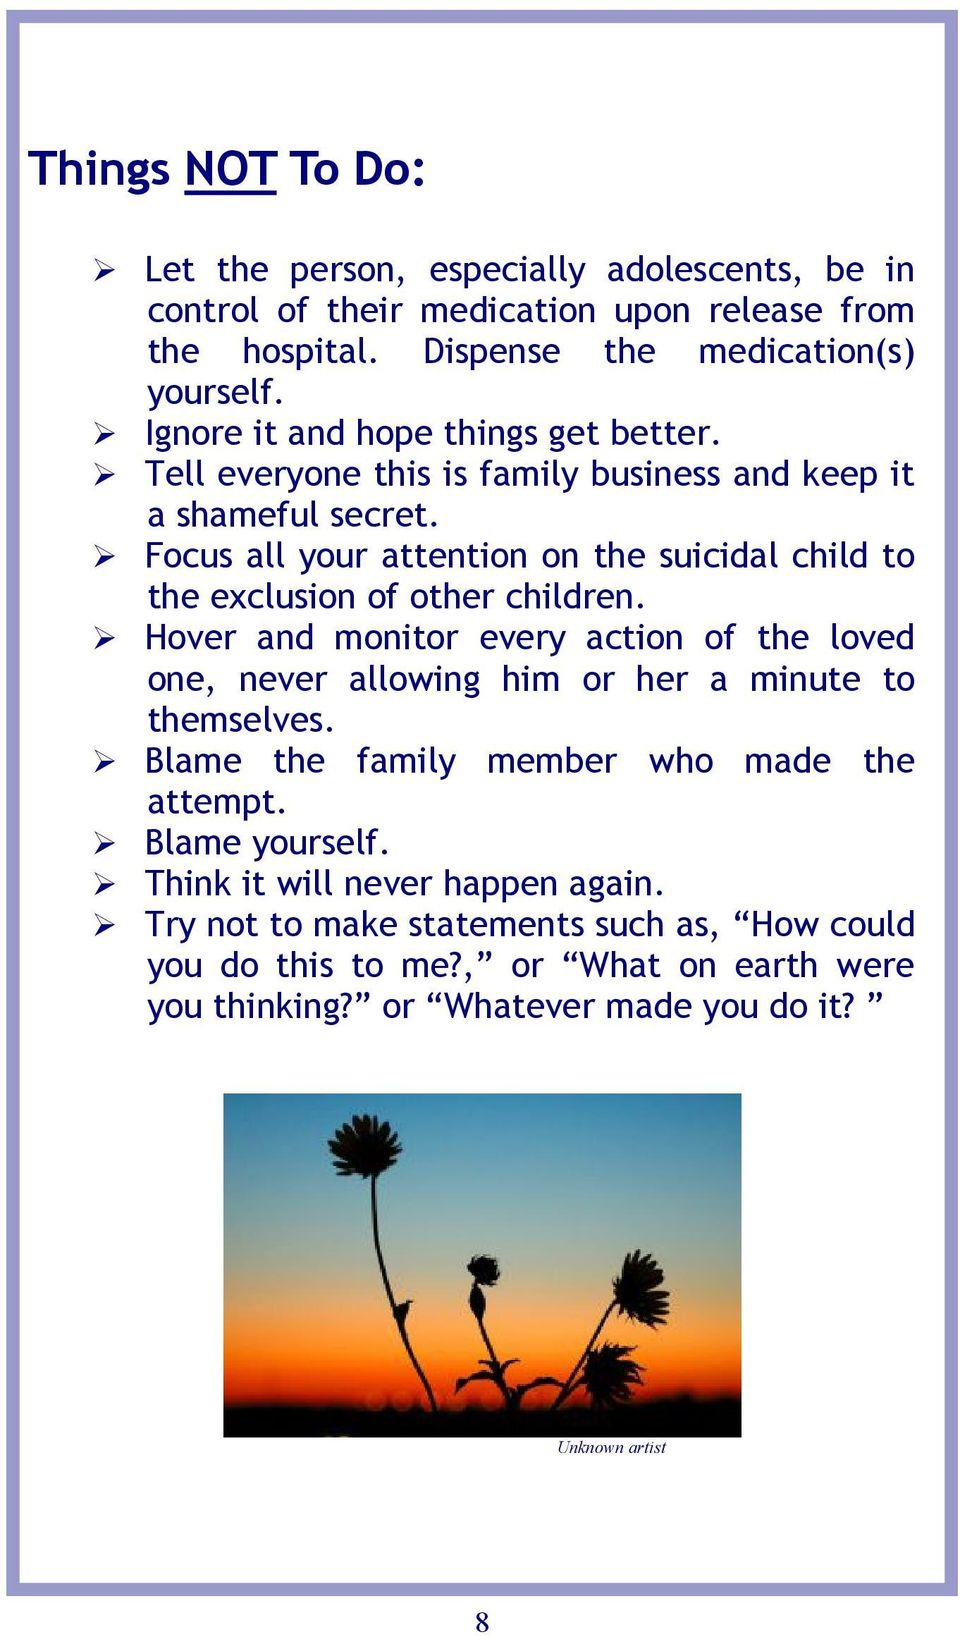 Focus all your attention on the suicidal child to the exclusion of other children.